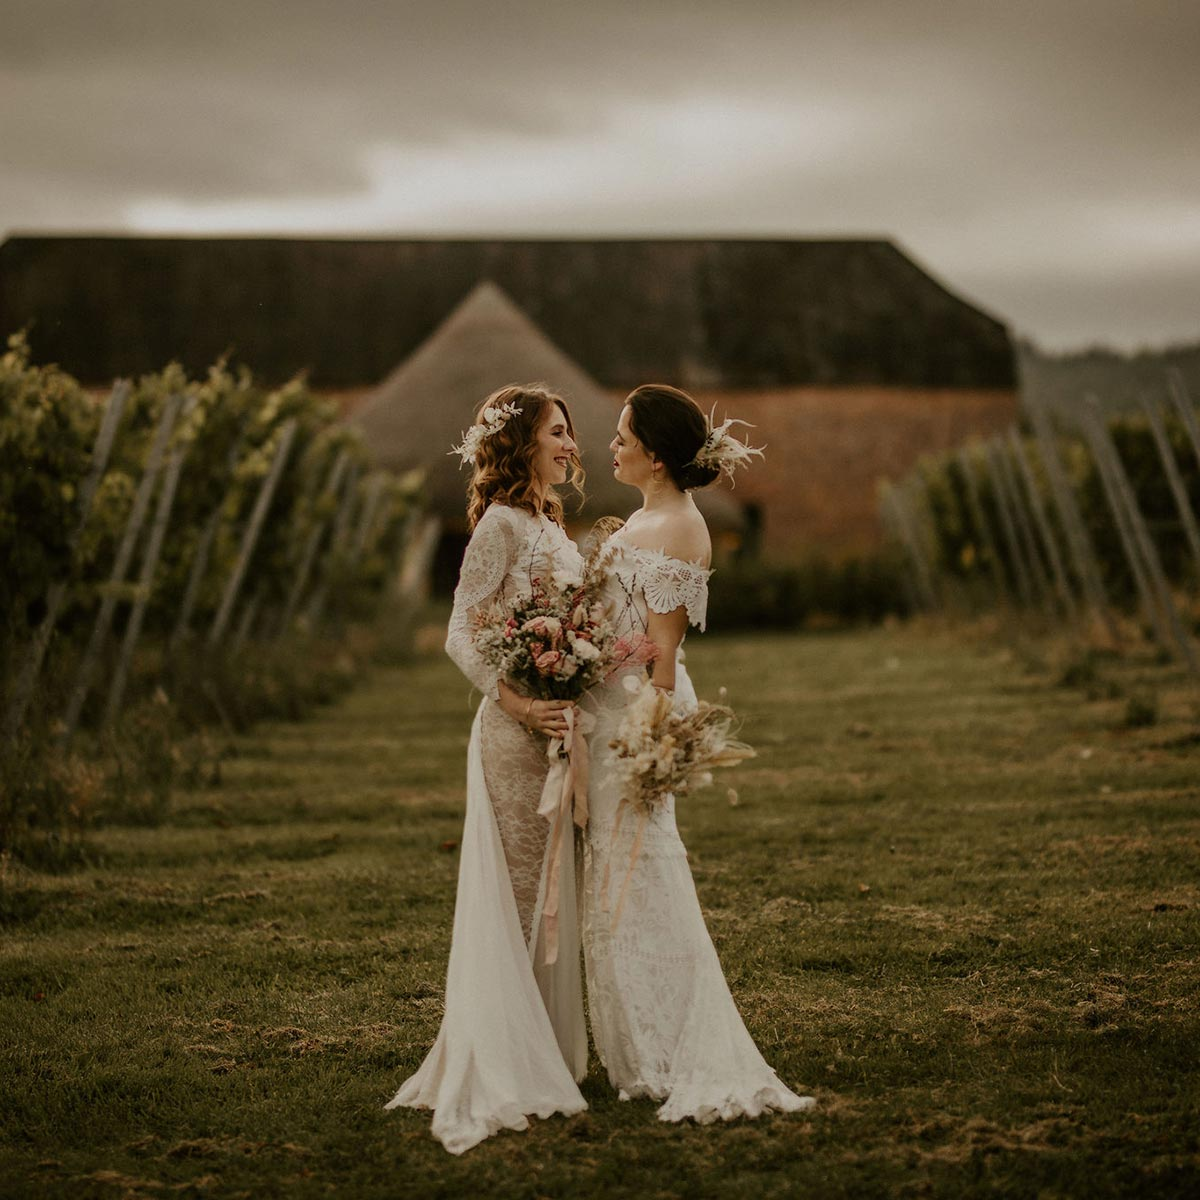 Same sex wedding venue - same sex couple embracing in front of rustic barn